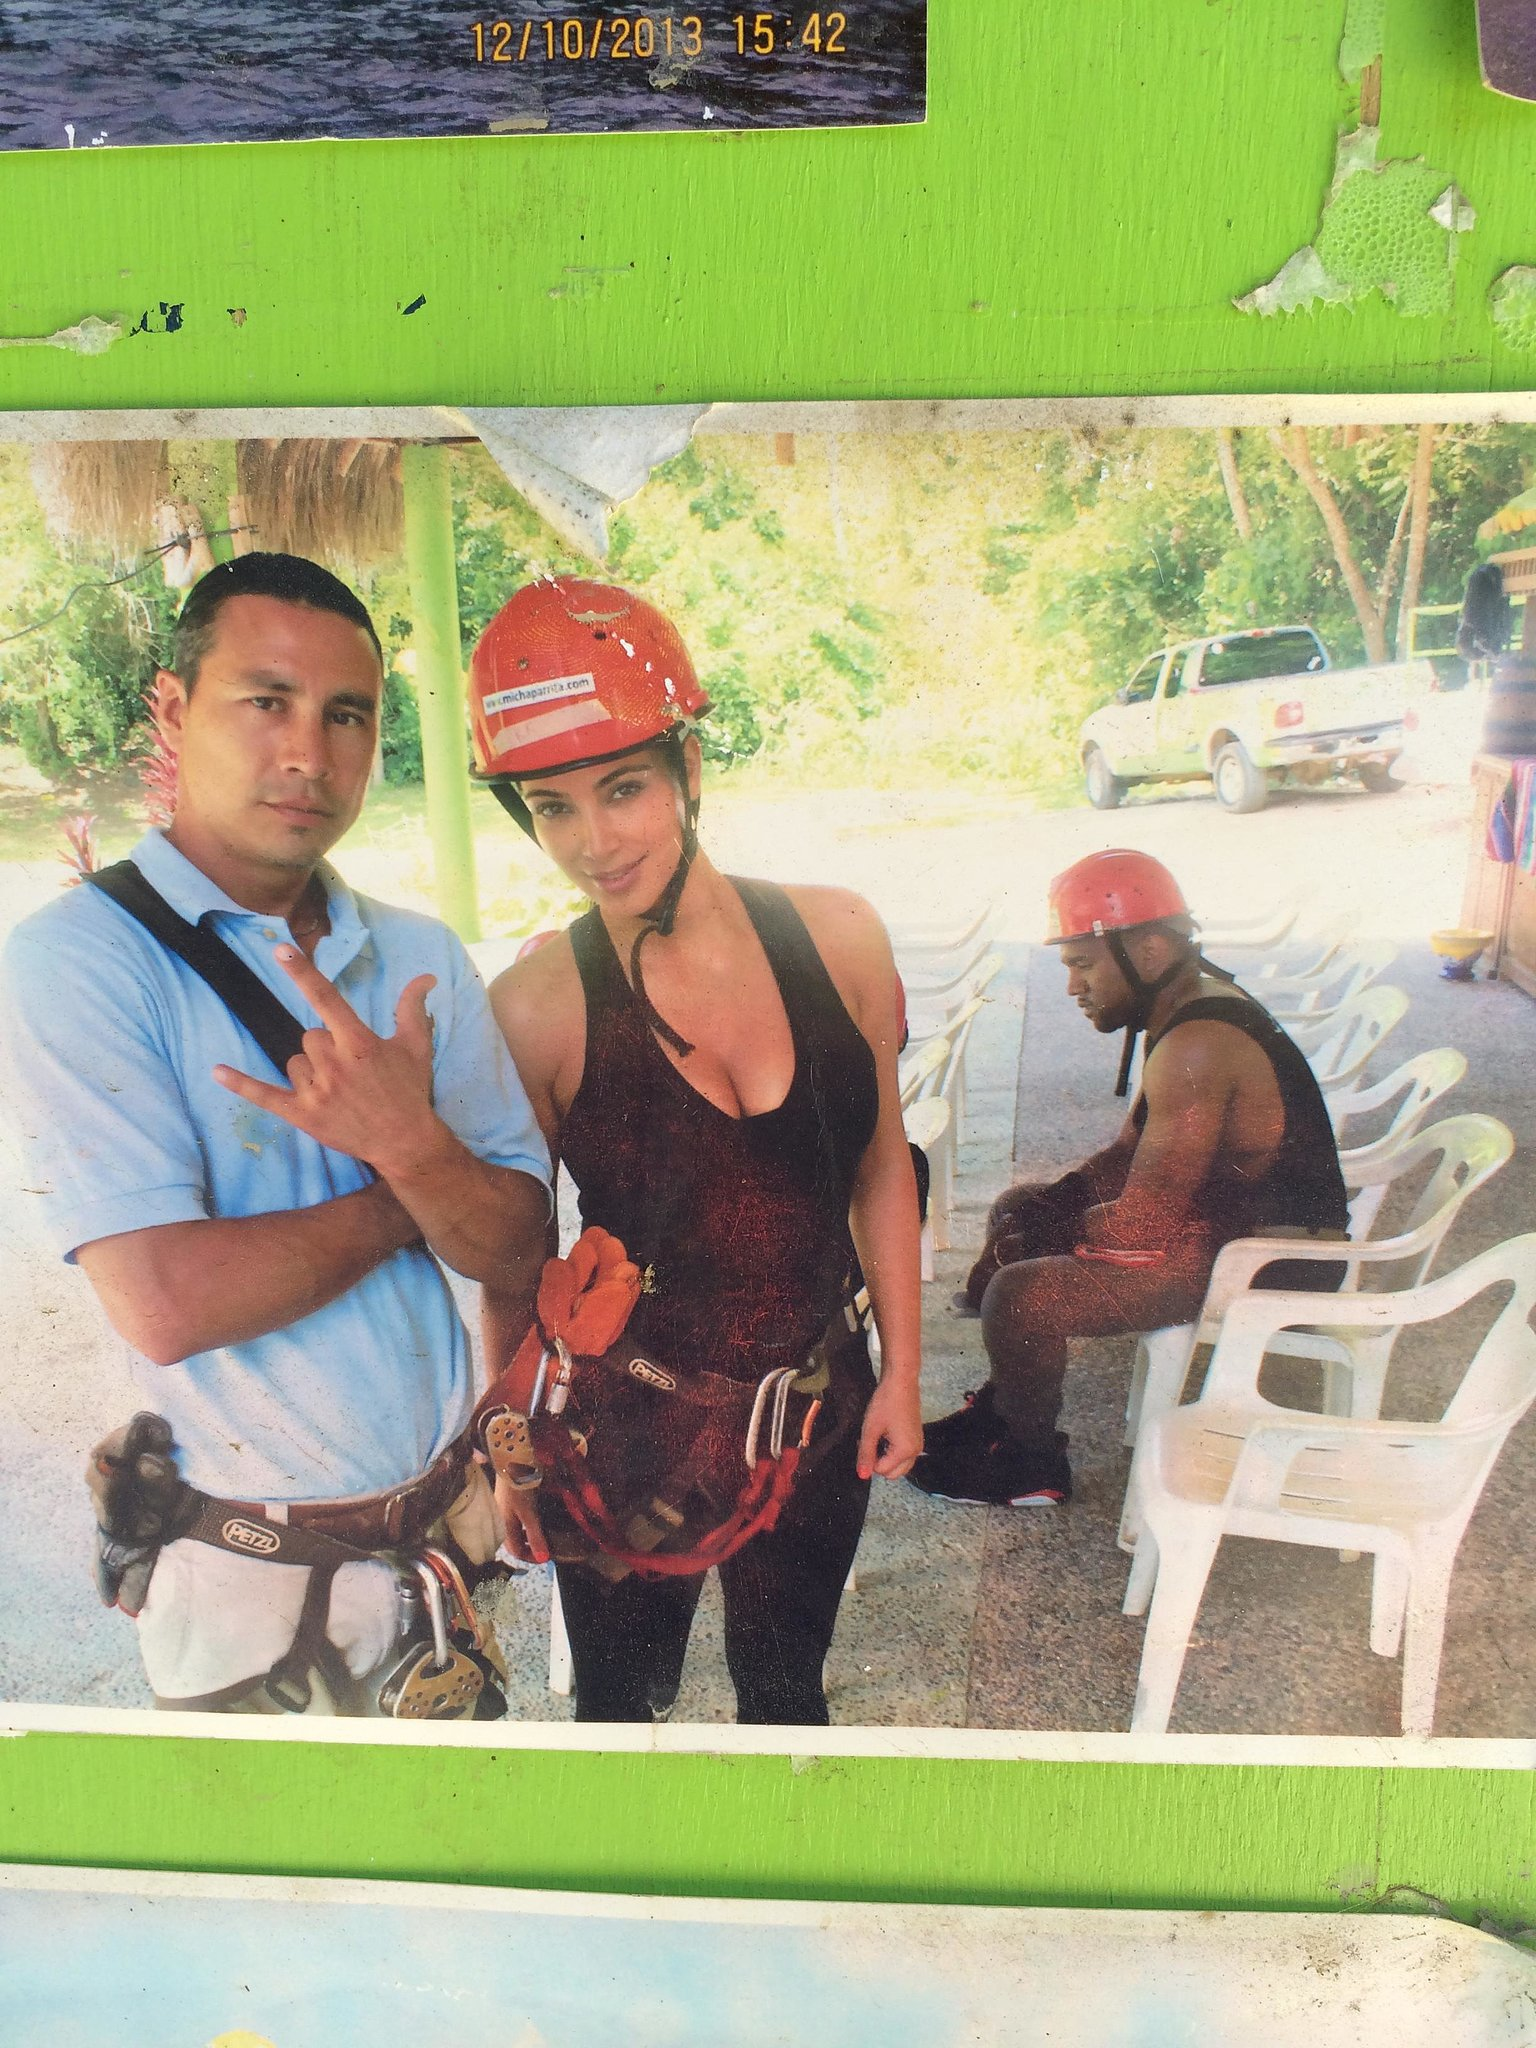 """""""Found it in a random zip-lining office in the middle of Mexico. They took it, and I don't think it's ever been online . . . """" Alternative caption: Kanye West couldn't look any less excited about zip-lining. Source: Reddit user loltatz via Imgur"""